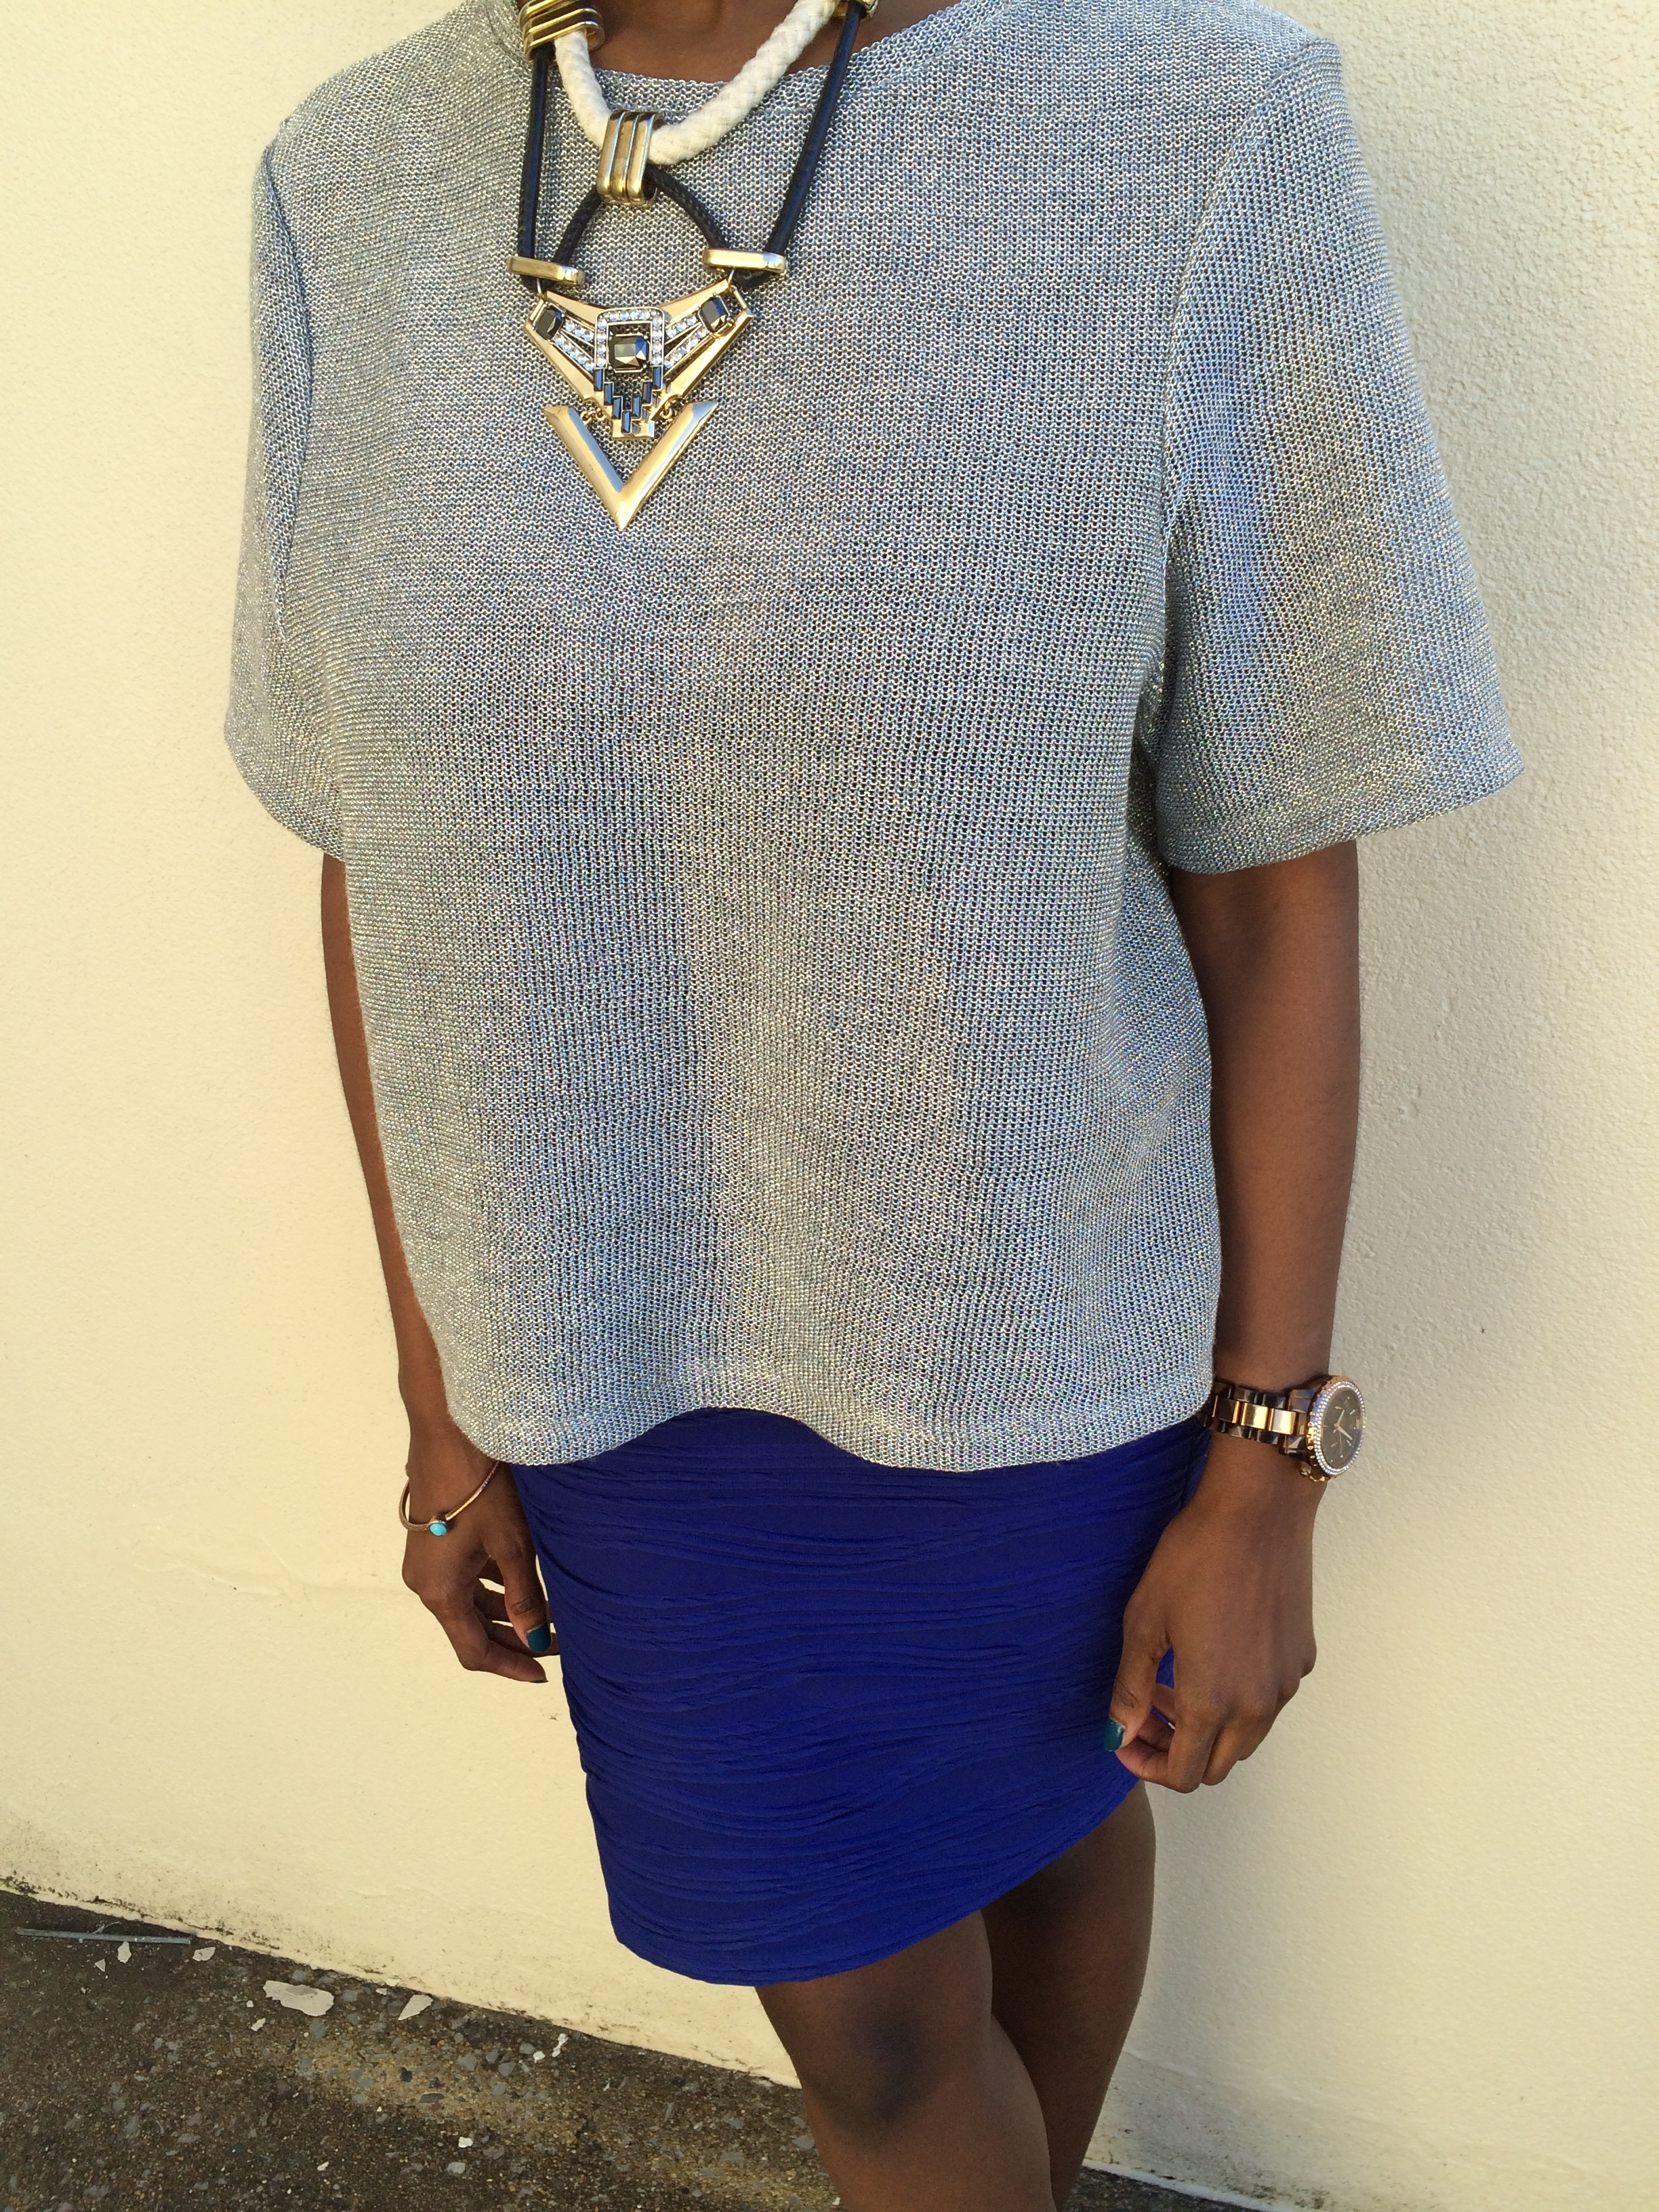 outfit details - shirt: H&M; skirt: Forever 21; necklace: Topshop; shoes: Bakers